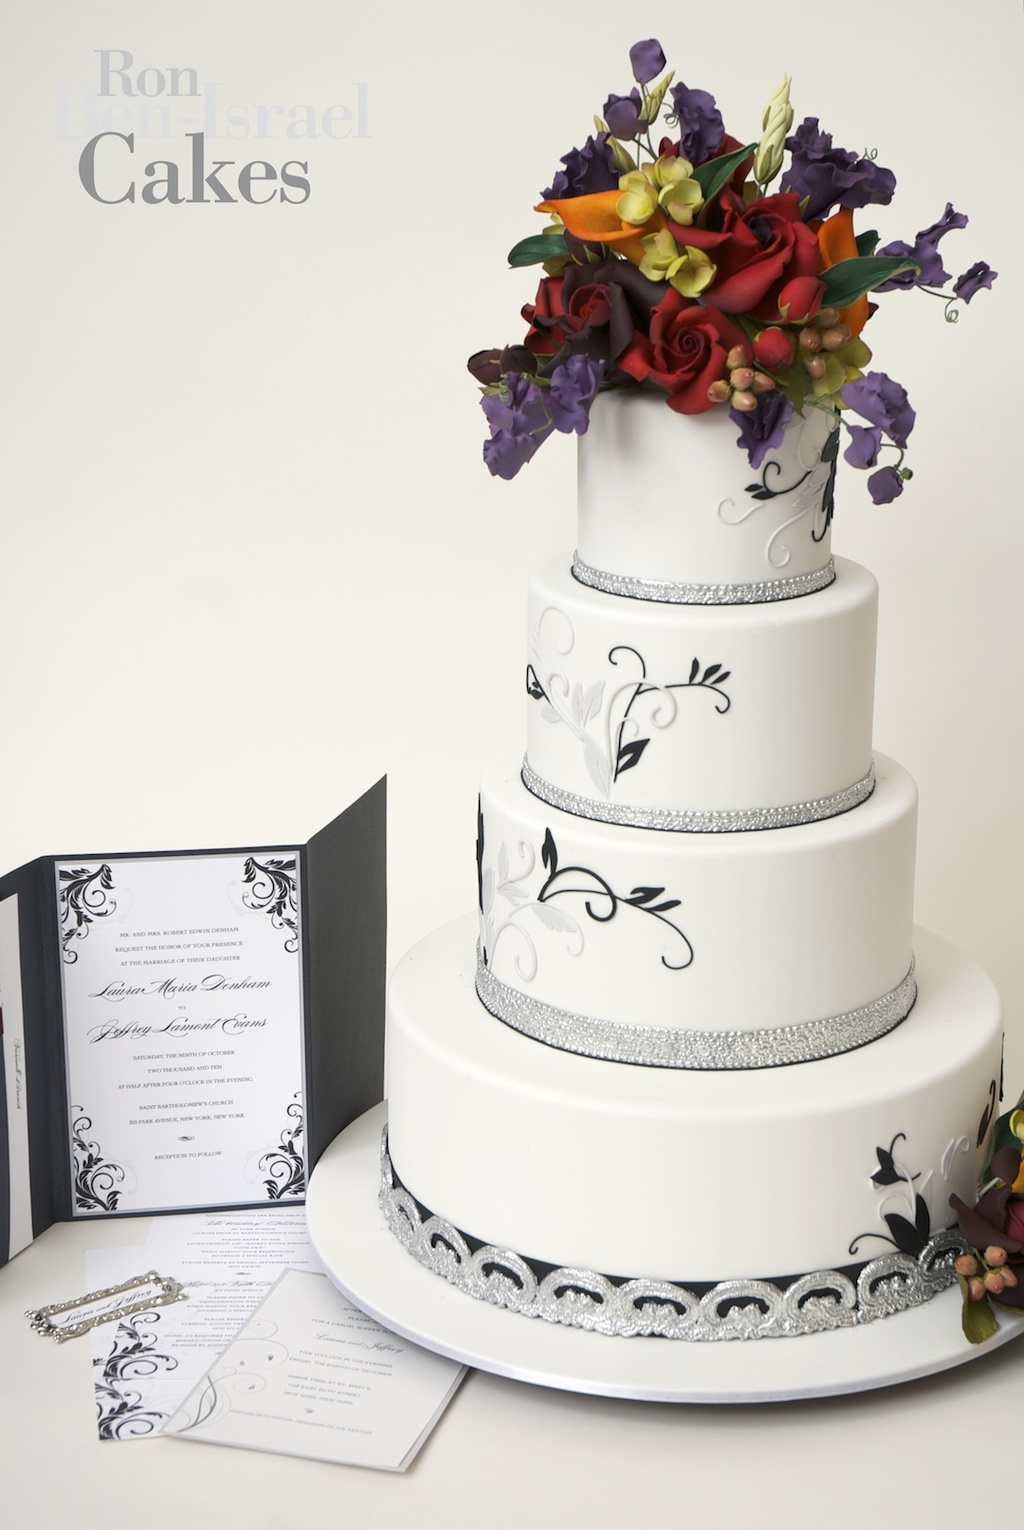 Wedding-cake-inspiration-ron-ben-isreal-wedding-cakes-white-silver-with-fall-florals.original.full